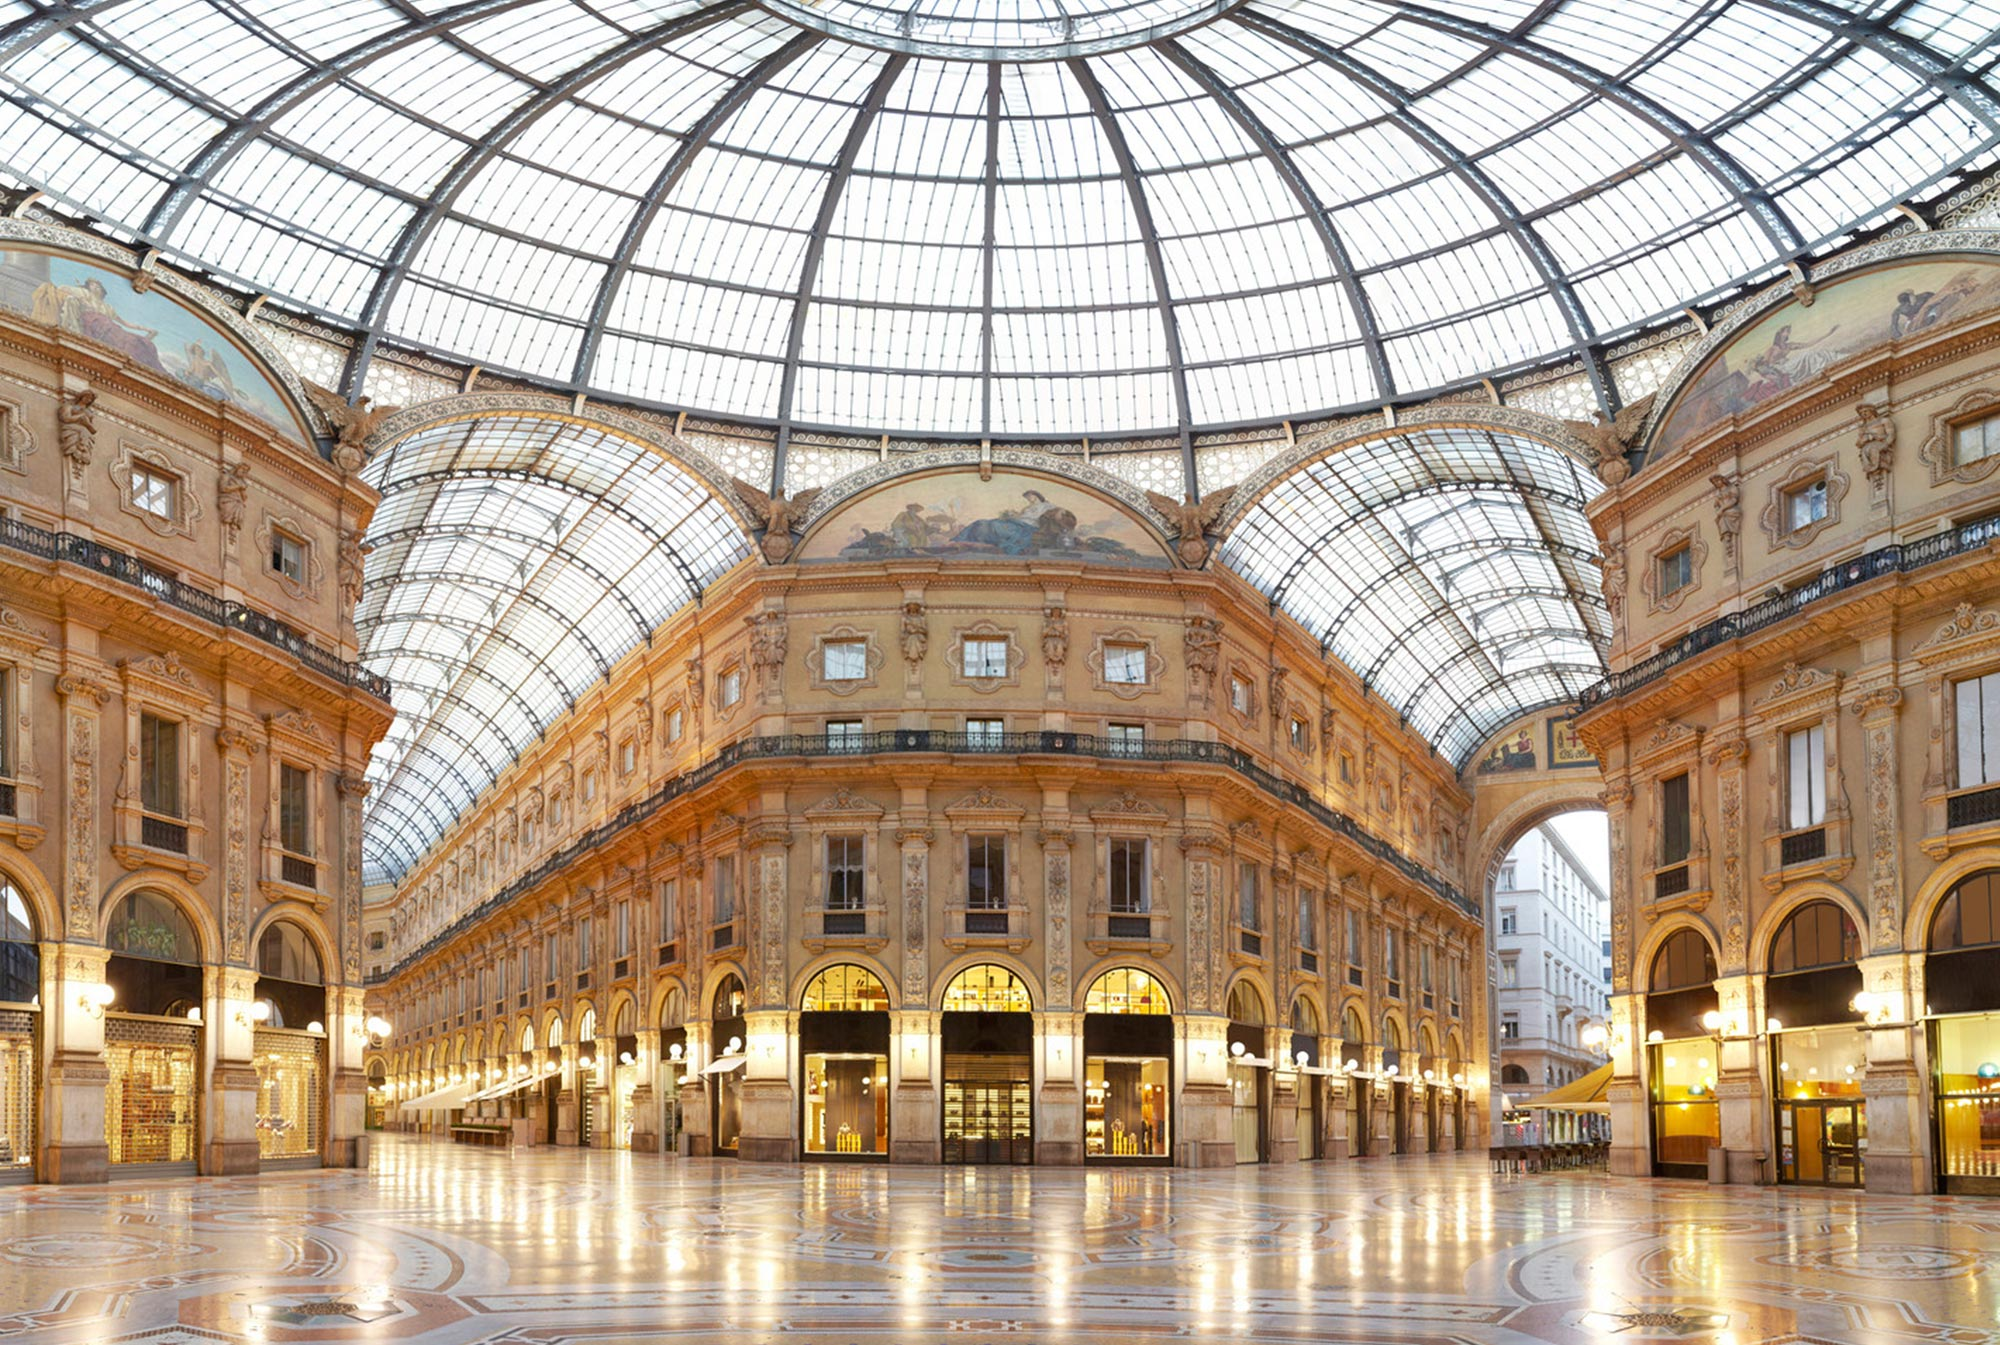 shopping mall, Italy